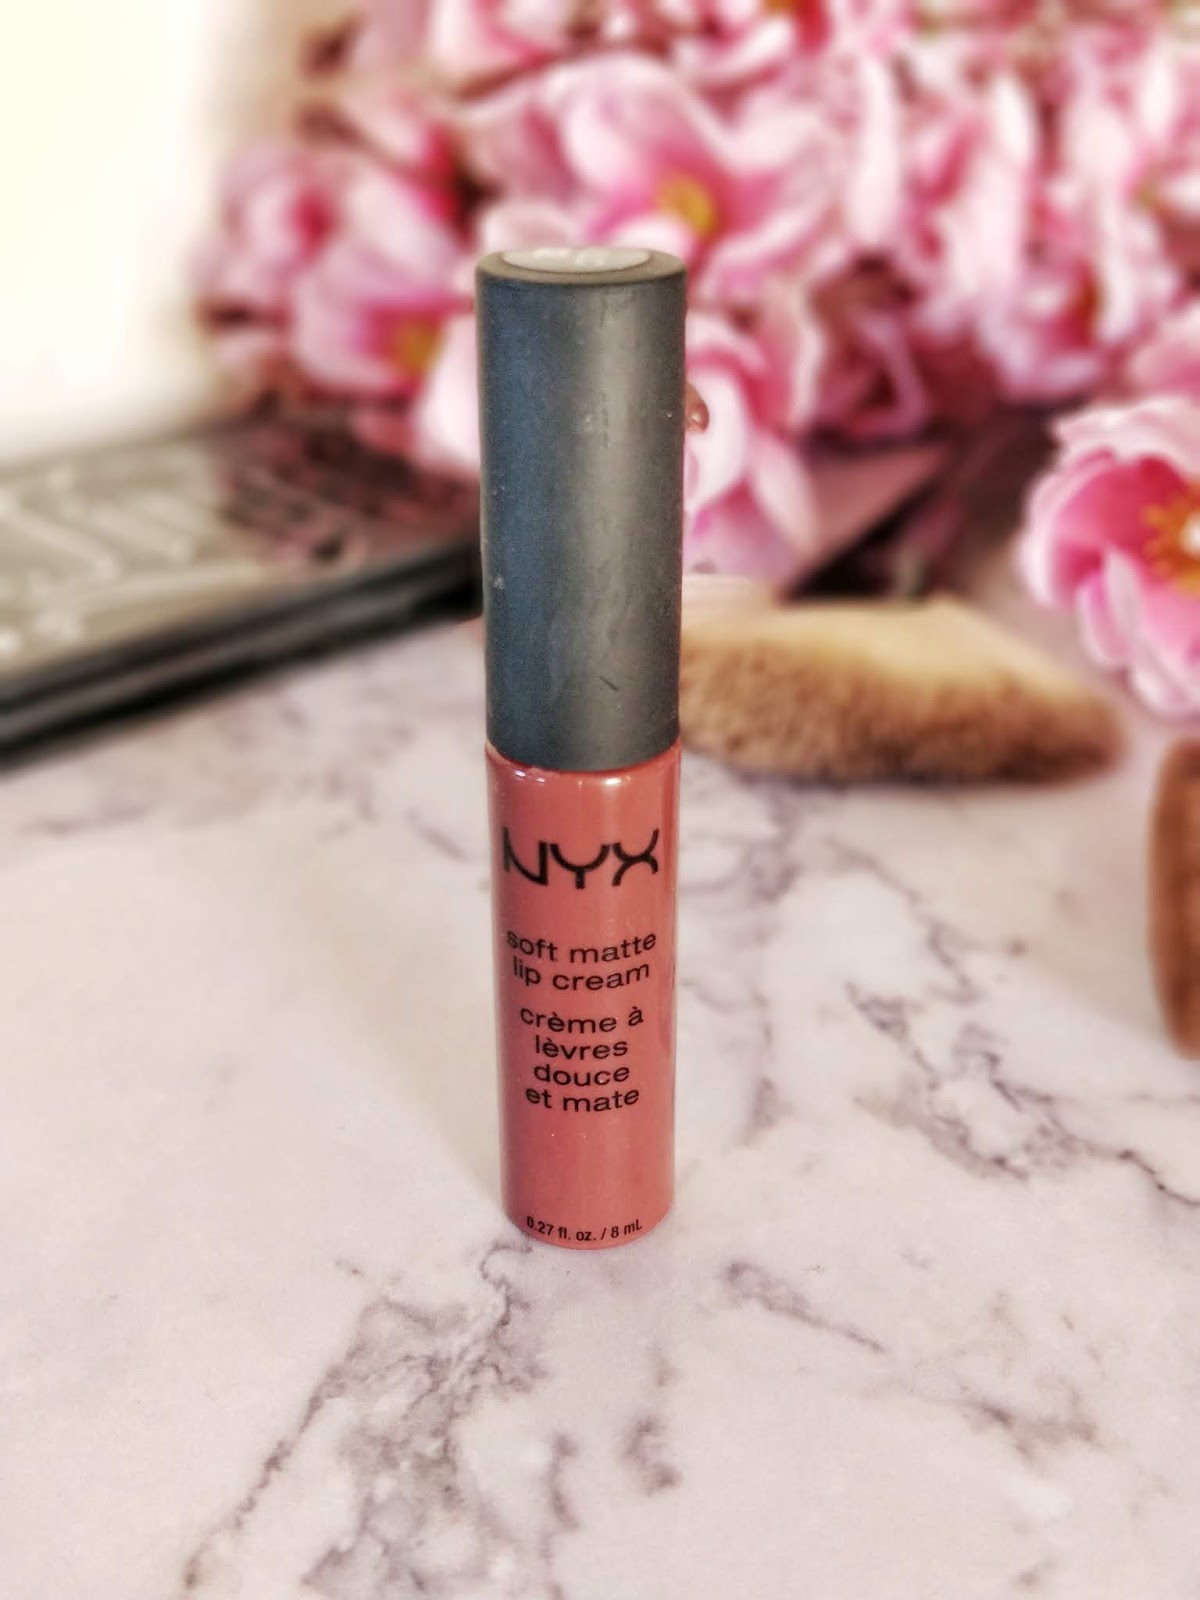 Budget Belleza On Feedspot Rss Feed Nyx Soft Matte Lip Cream All Variant Even Though Slmc Have Been Around For Years Their Packaging Still Continues To Be Same